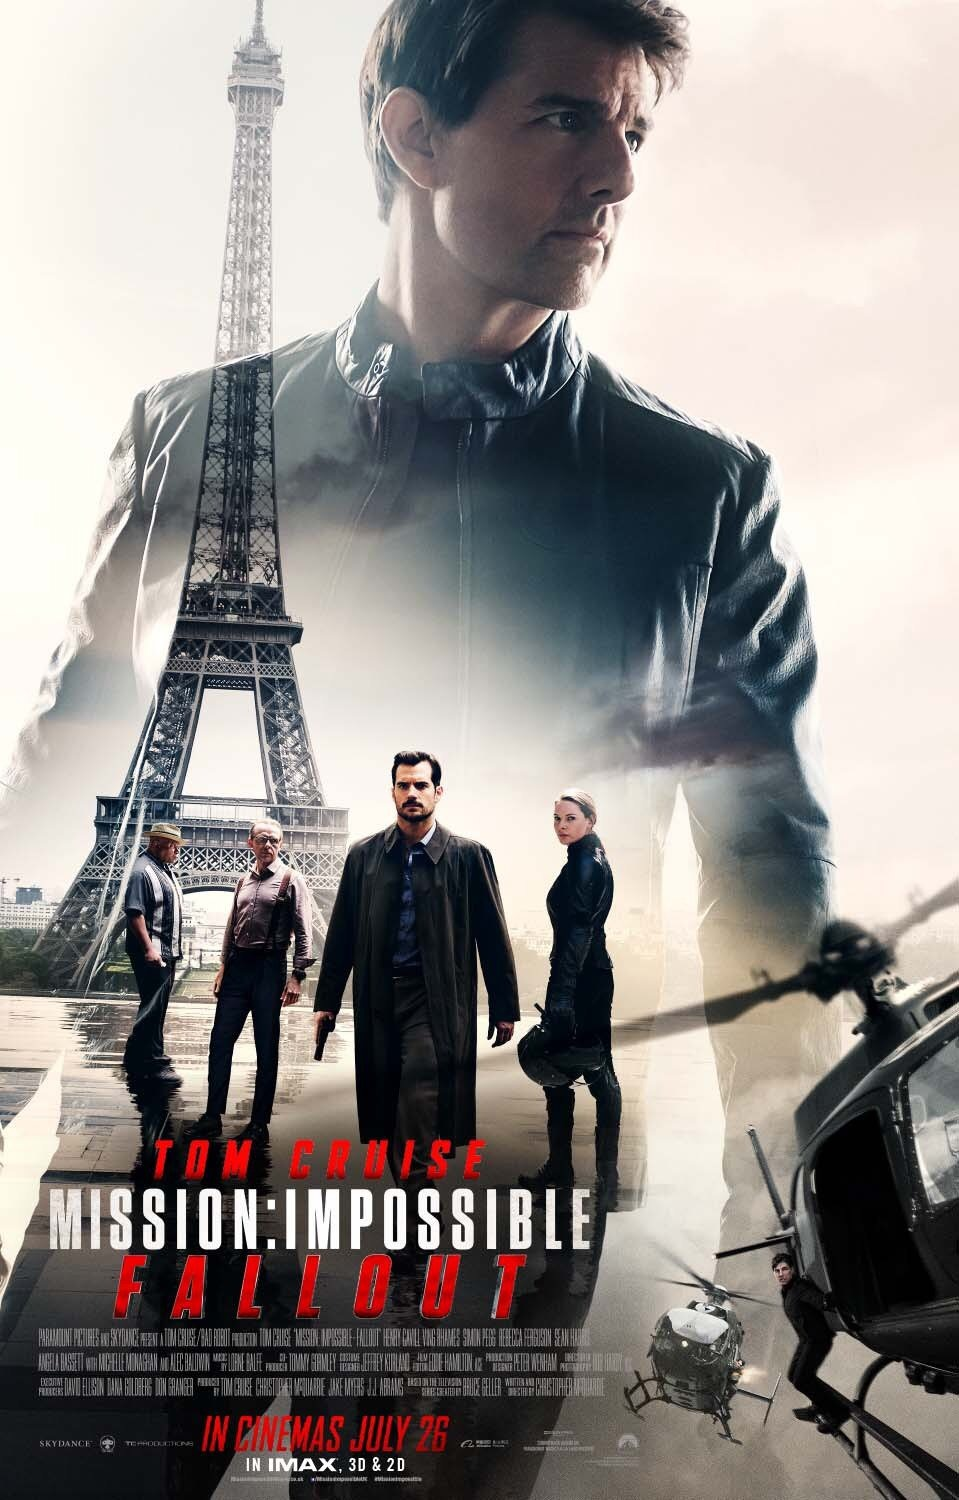 Mission_Impossible_Fallout_poster_4.jpg